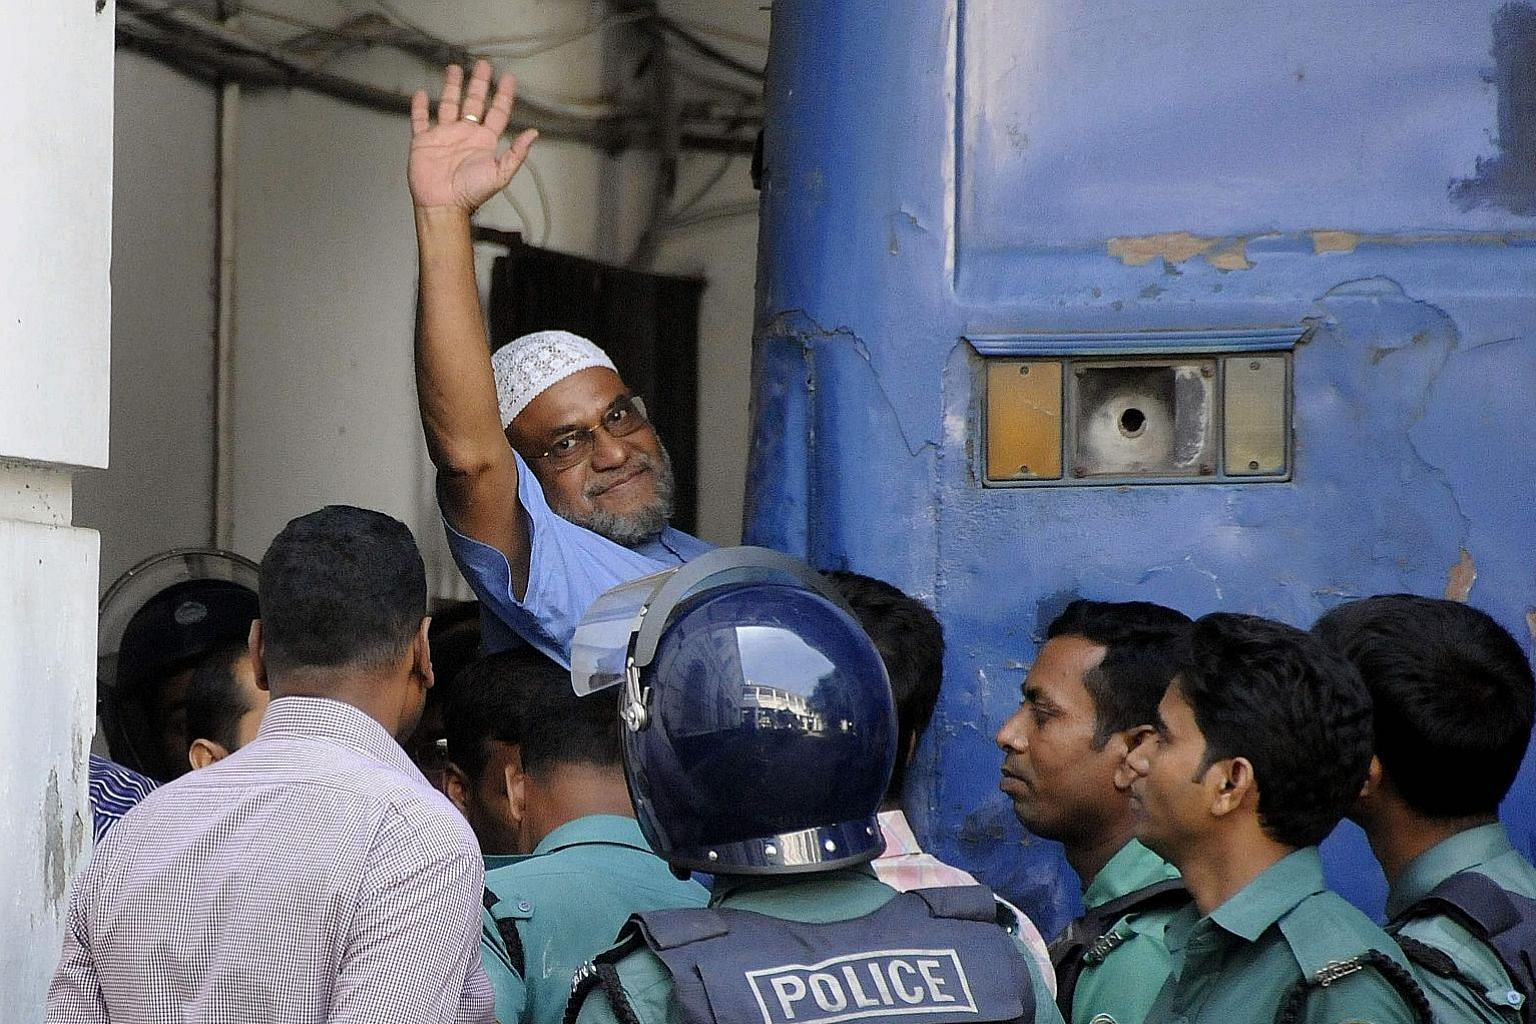 Jamaat leader Mir Quasem Ali at the International Crimes Tribunal in Dhaka on Nov 2, 2014 - the day he was sentenced to death for crimes committed during the country's war of independence. The execution comes as the country is reeling from a rise in